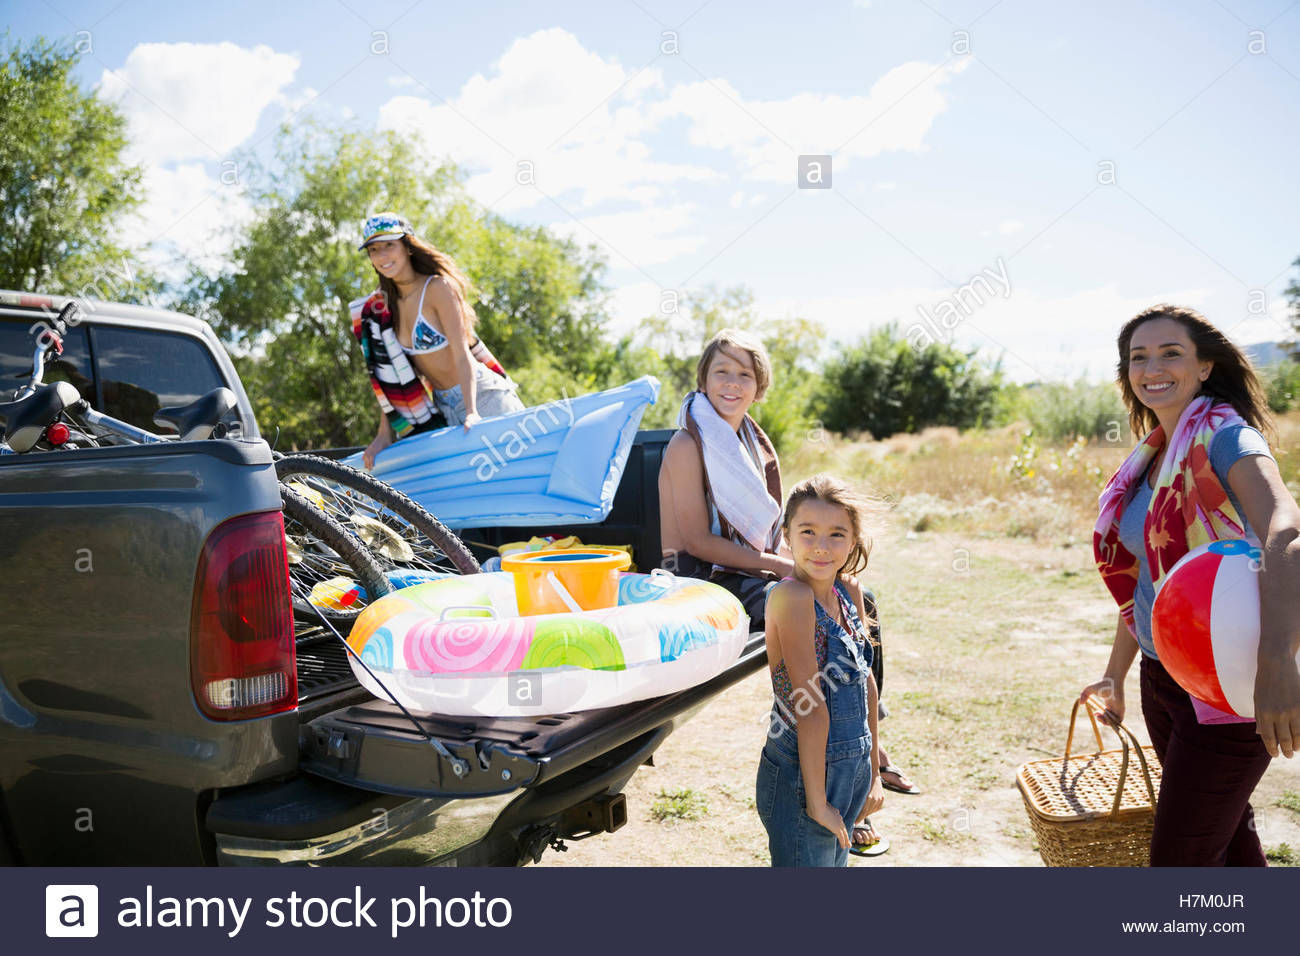 Portrait smiling family with beach equipment at sunny truck bed - Stock Image